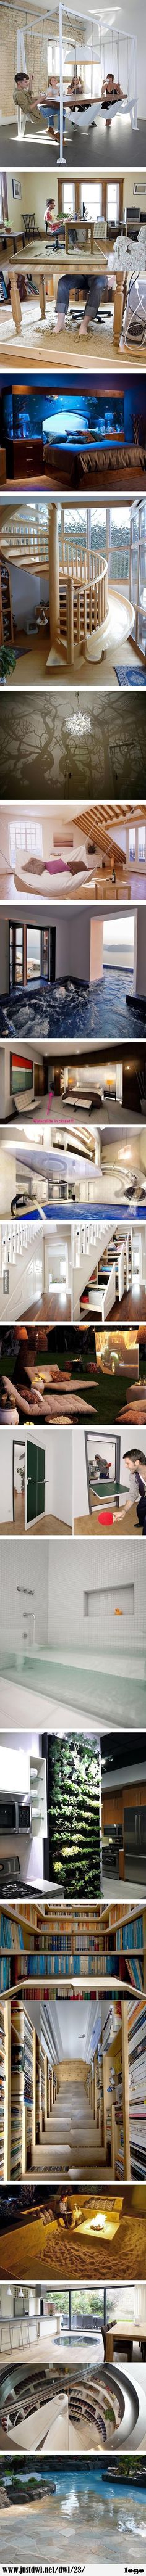 18 awesome home ideas - Just DWL || The Ultimate Trolling